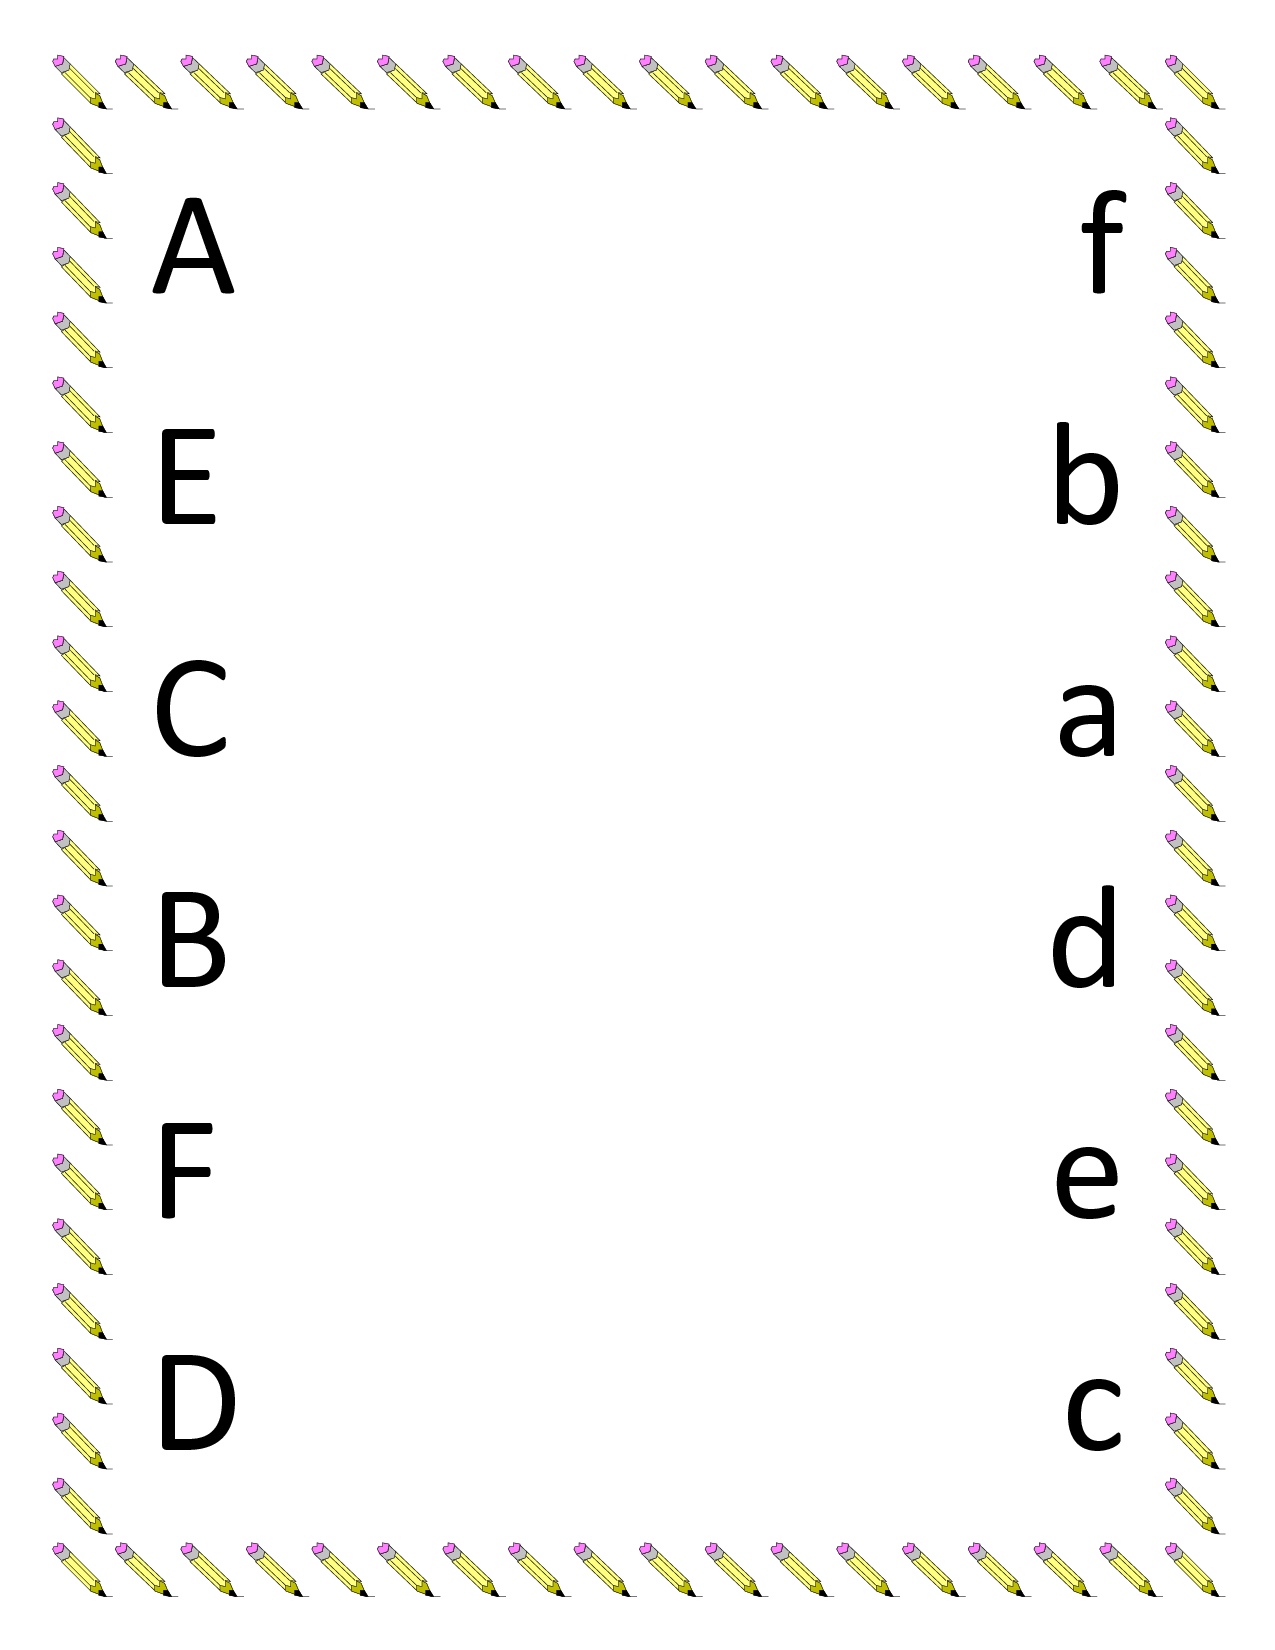 worksheet Kindergarden Worksheets kindergarten worksheets preschool printables for kids 16 pictures photos